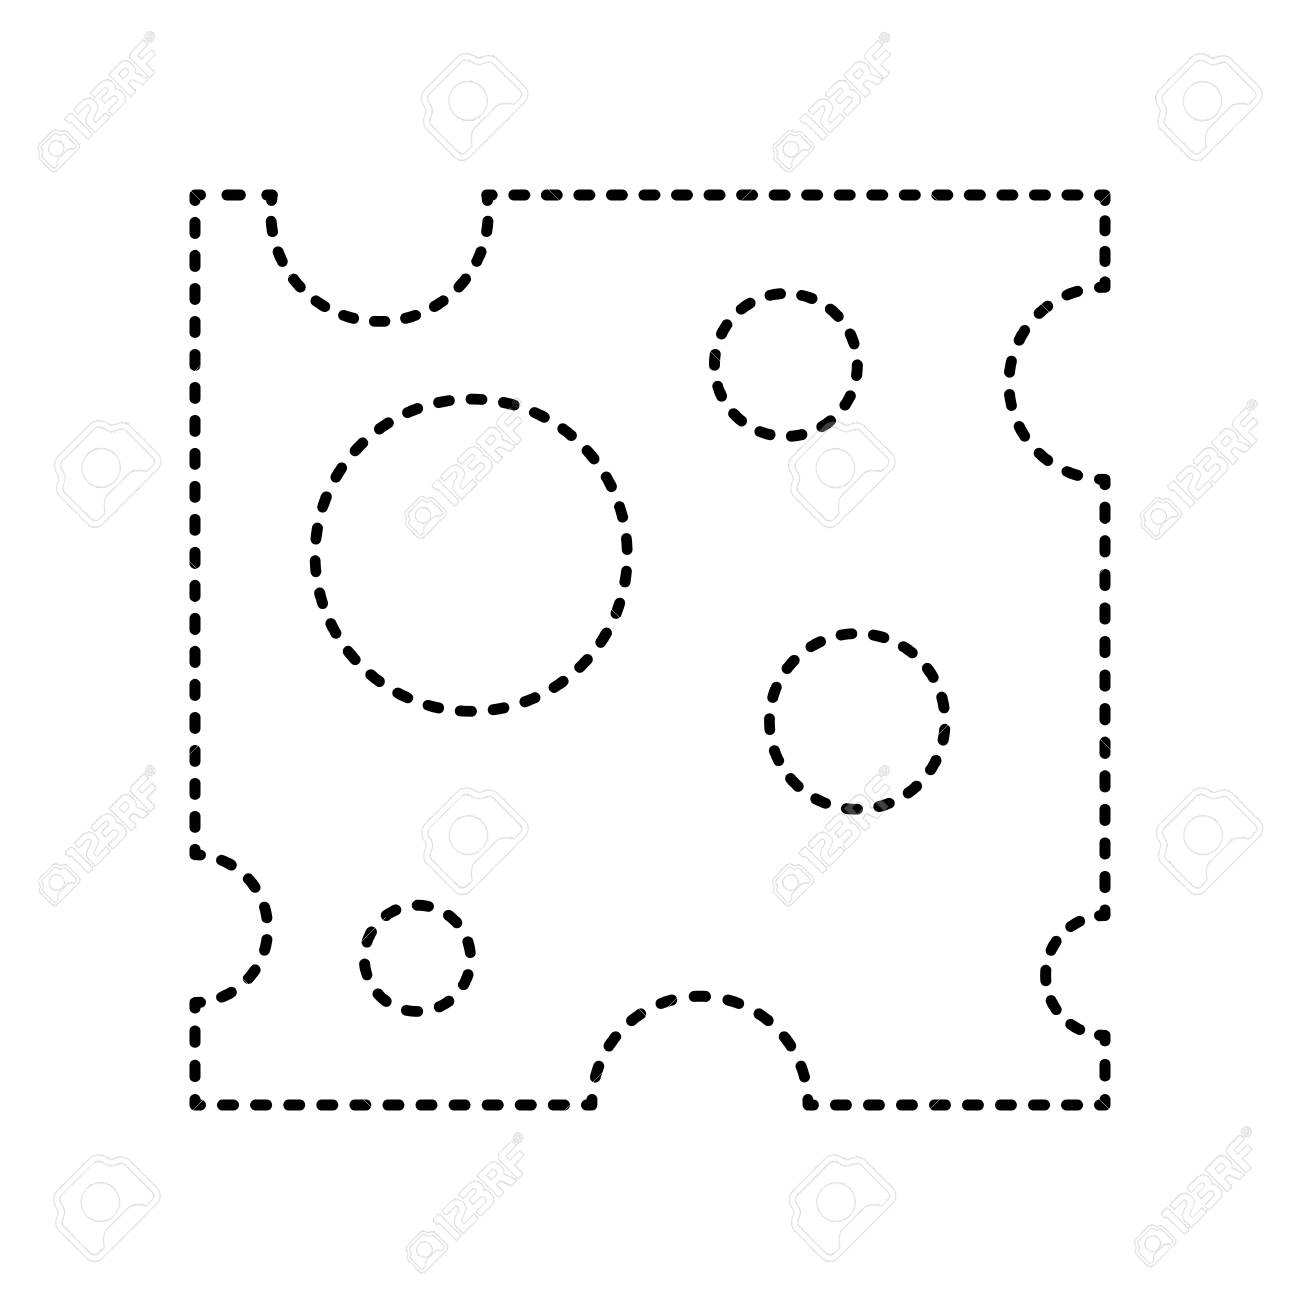 Cheese Slice Sign Vector Black Dashed Icon On White Background Isolated Royalty Free Cliparts Vectors And Stock Illustration Image 74515299